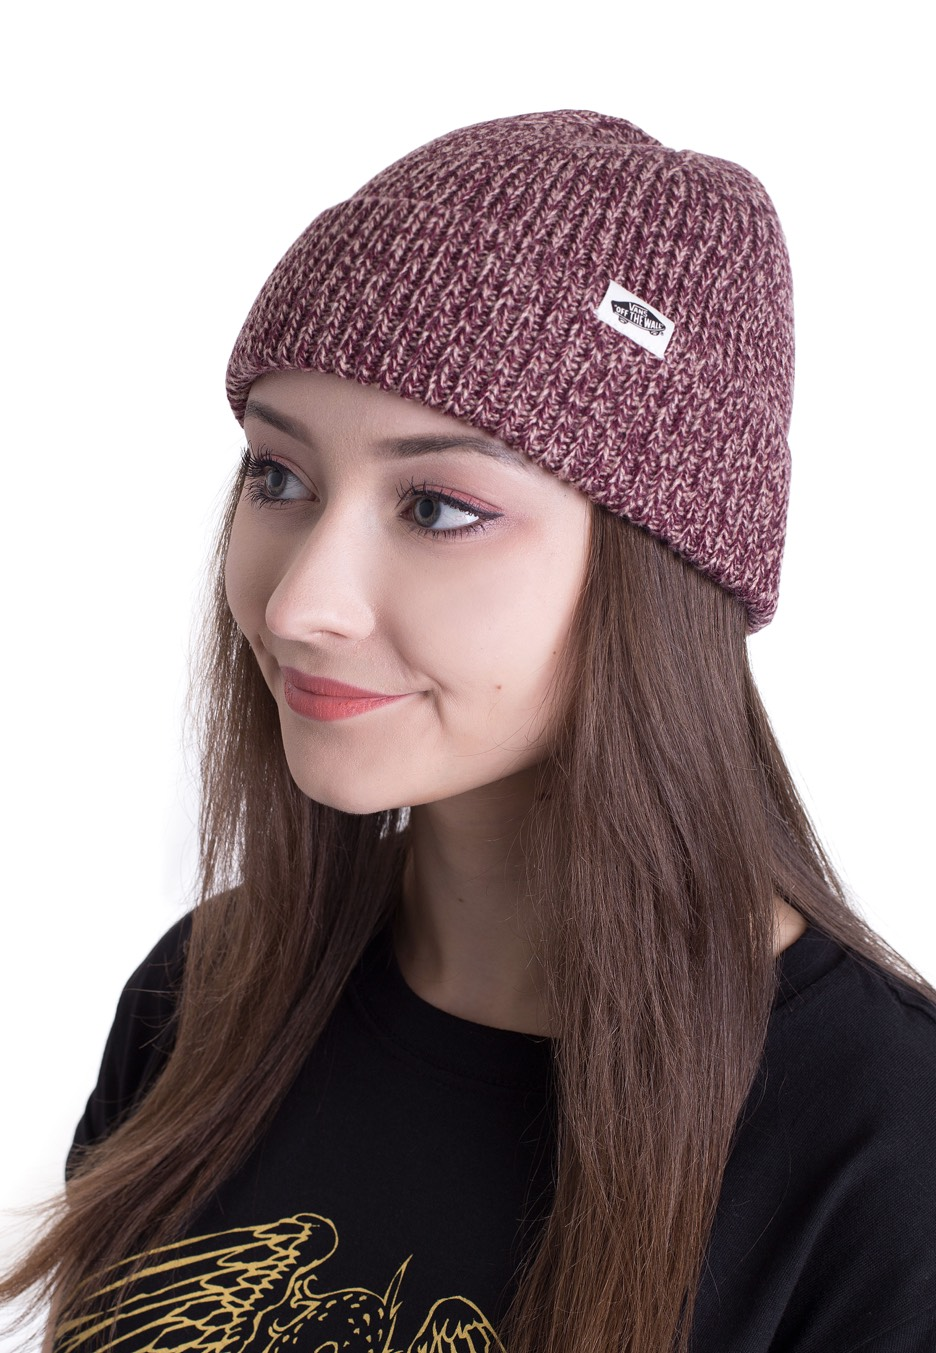 Vans - Twilly Burgundy Mahogany Rose - Muts - Impericon.com NL e1130c0658c